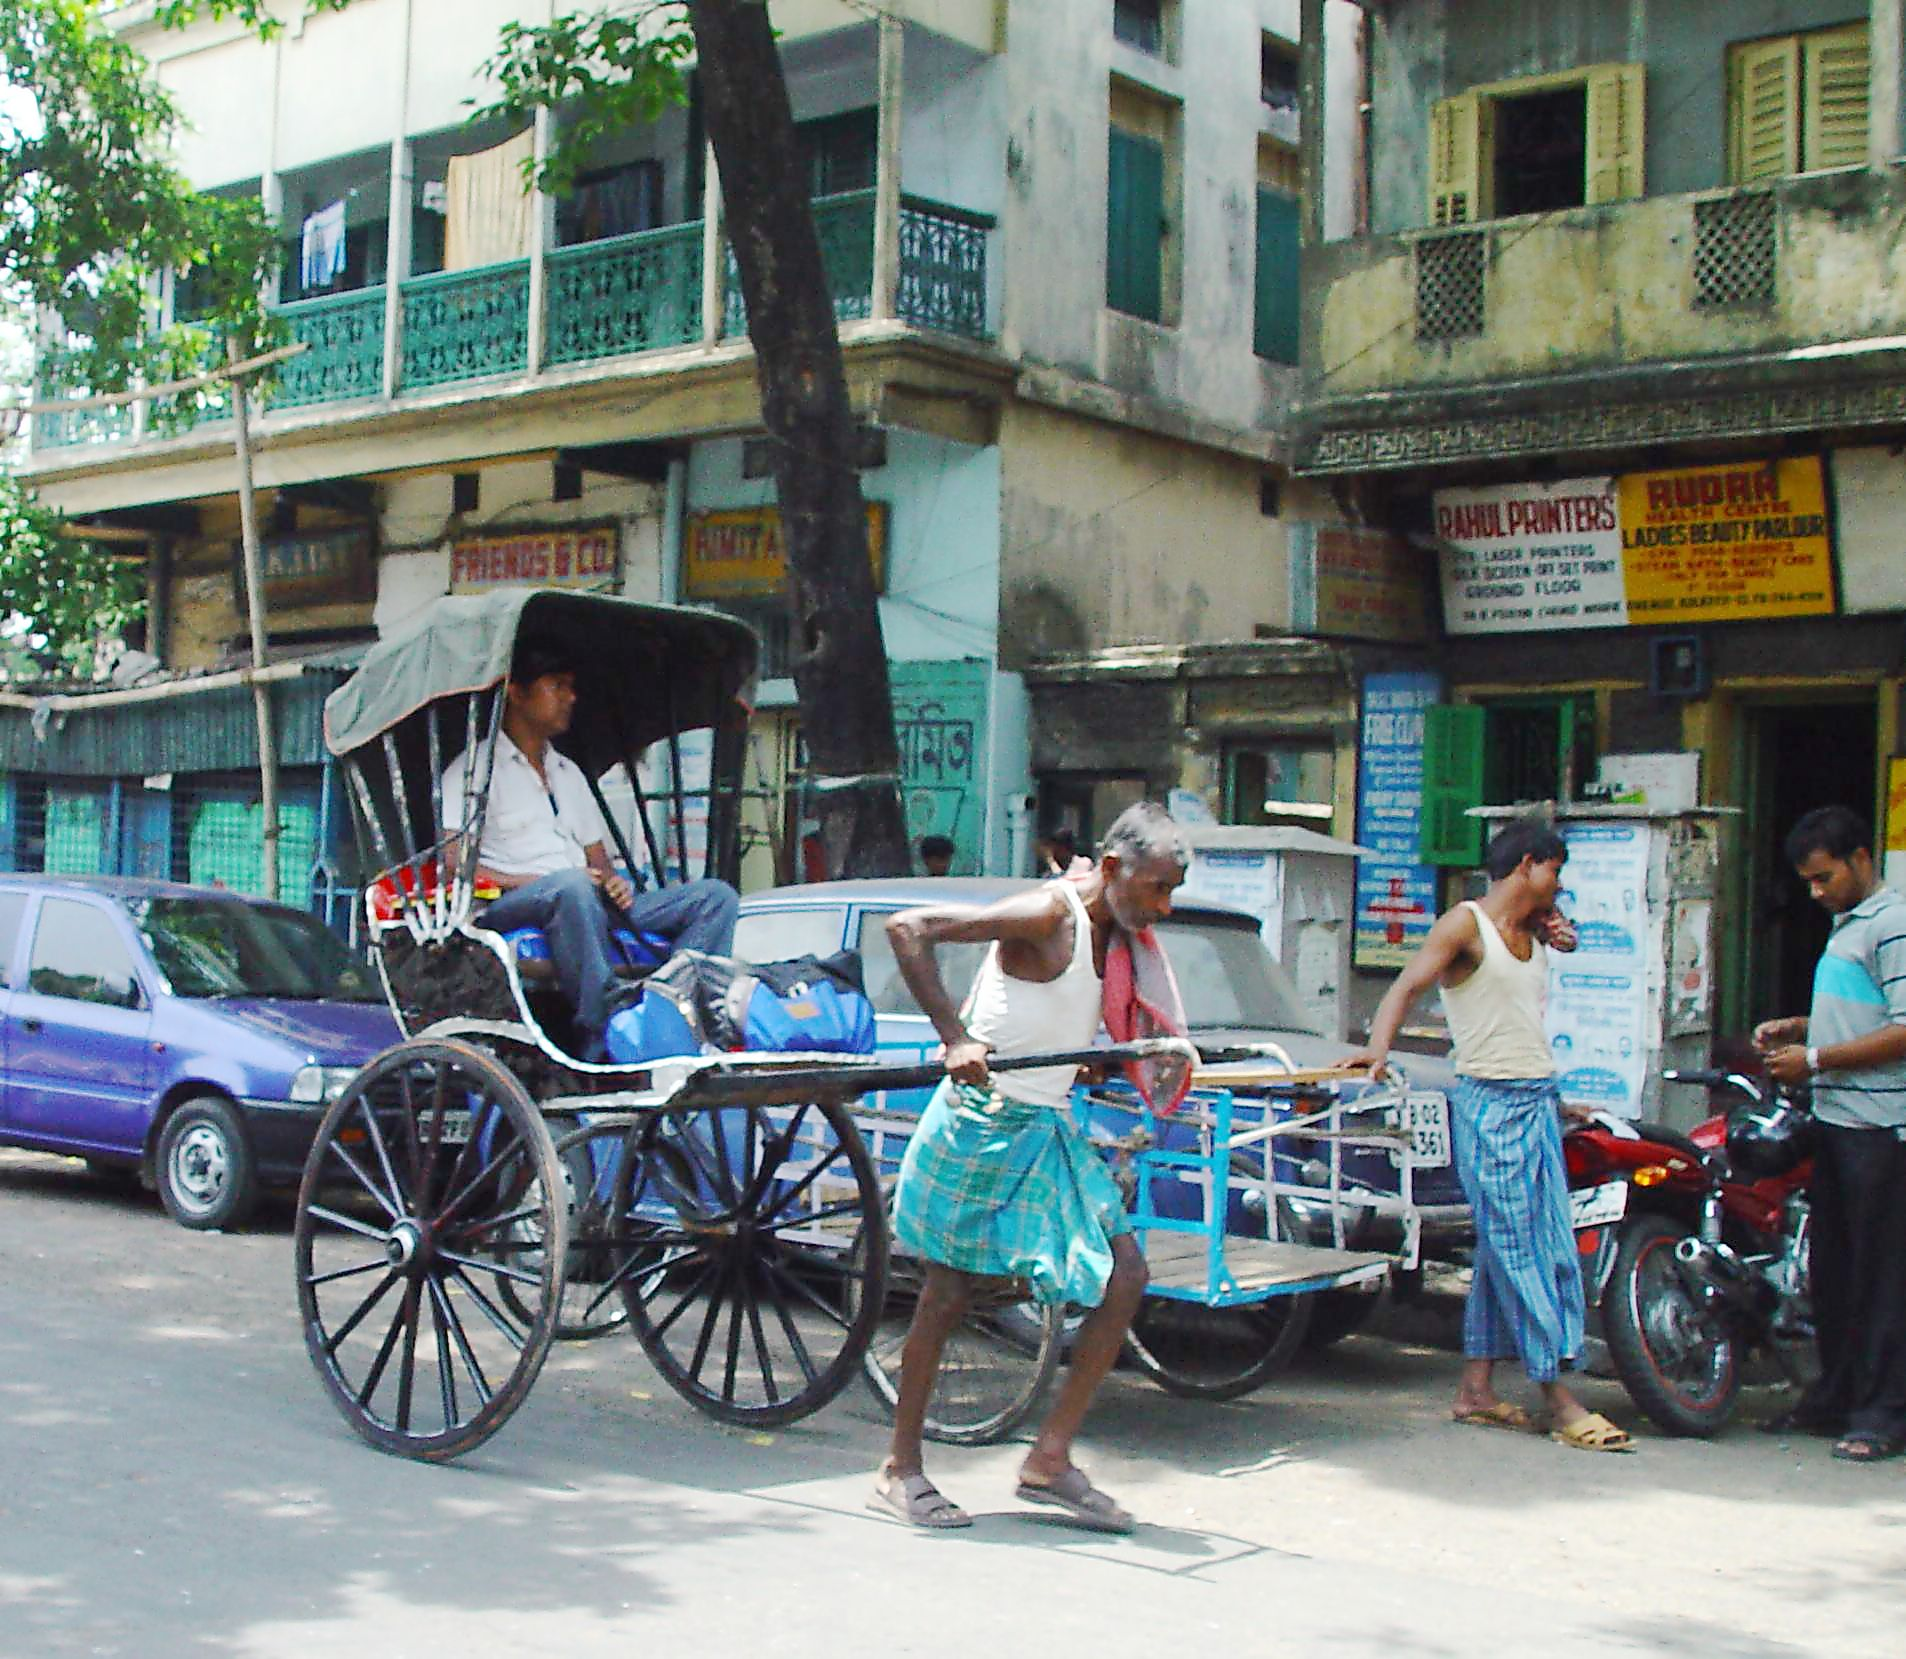 http://upload.wikimedia.org/wikipedia/commons/7/7e/Calcutta_rickshaw.jpg